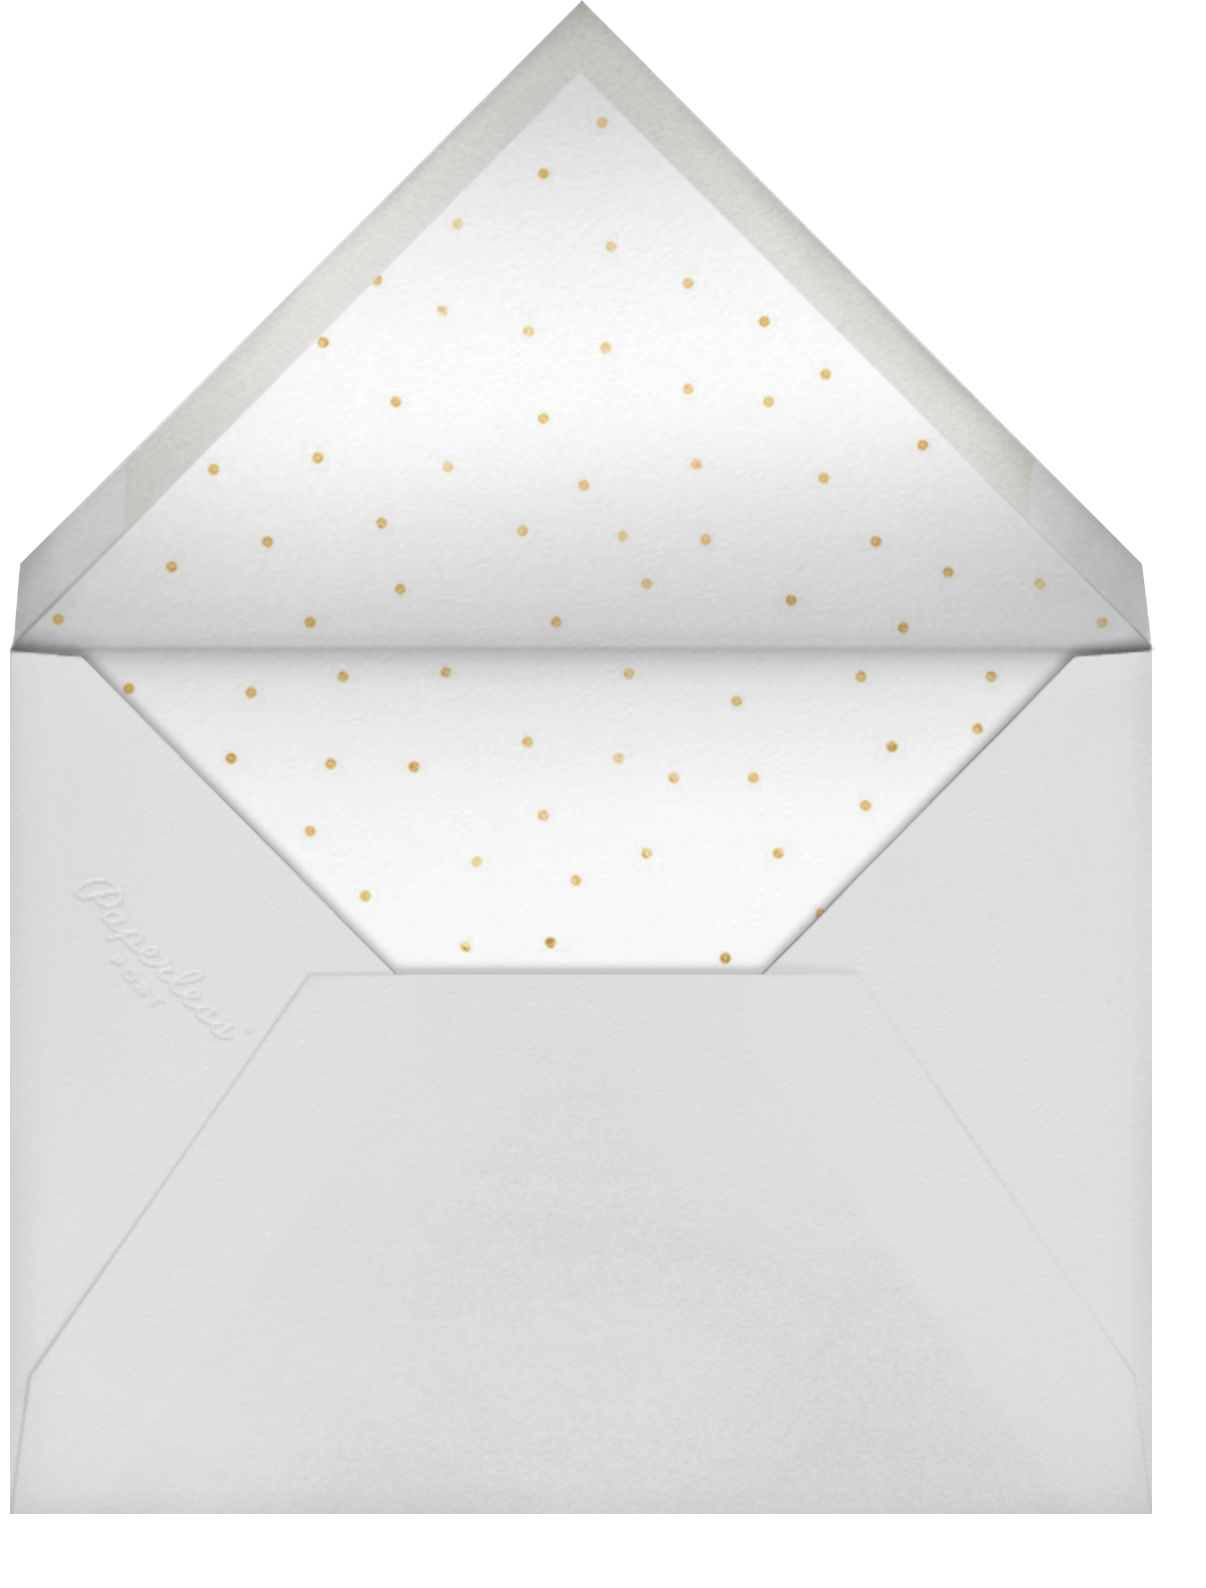 Refined Birthday - Sugar Paper - New Year's Eve - envelope back